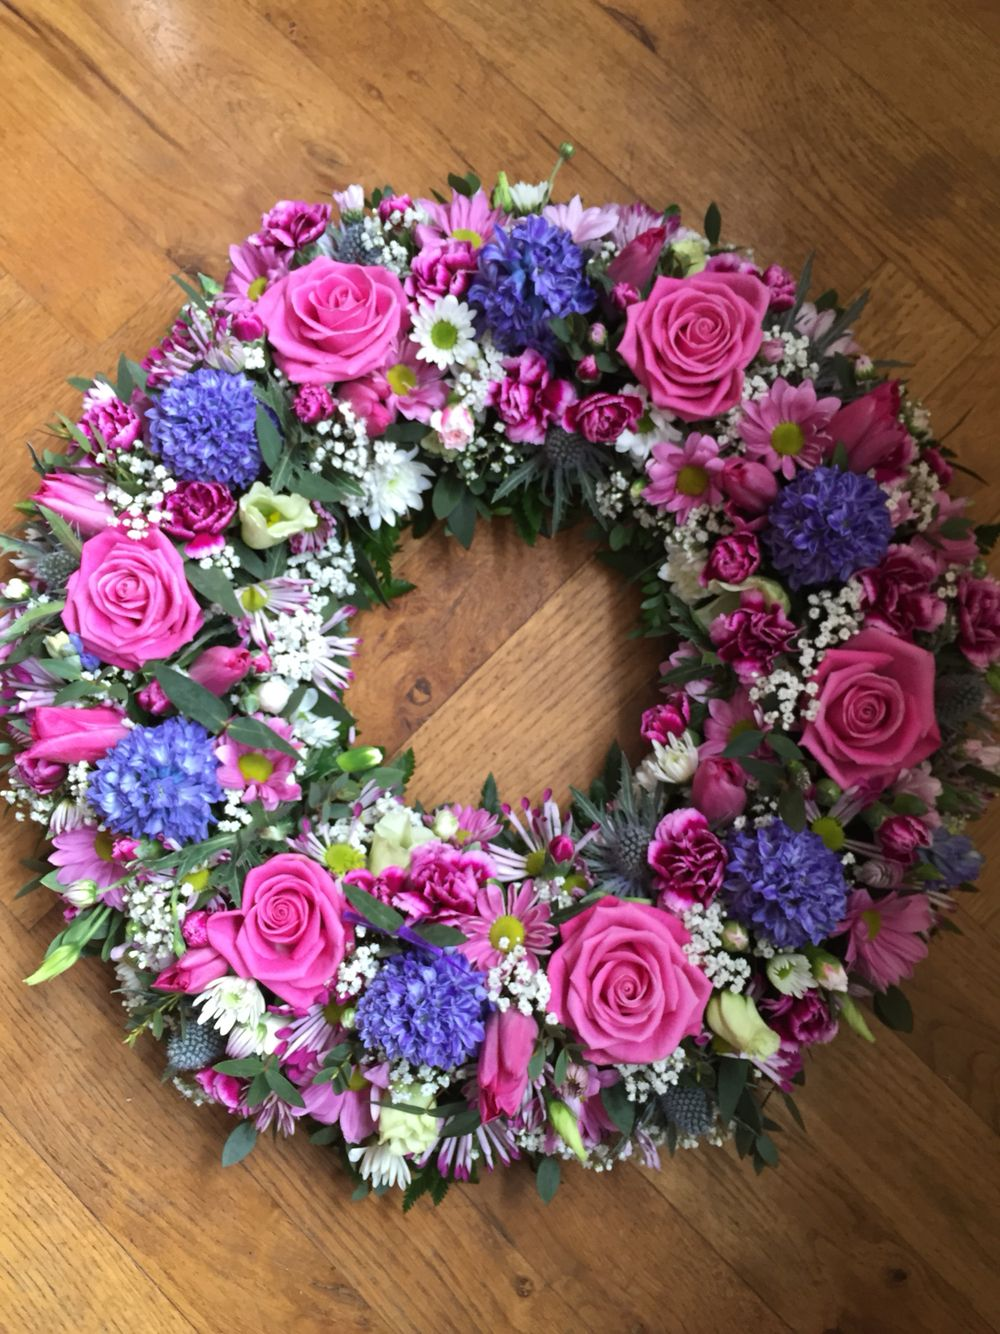 Rich pink blue and purple wreath funeral tribute in mixed flowers rich pink blue and purple wreath funeral tribute in mixed flowers izmirmasajfo Images